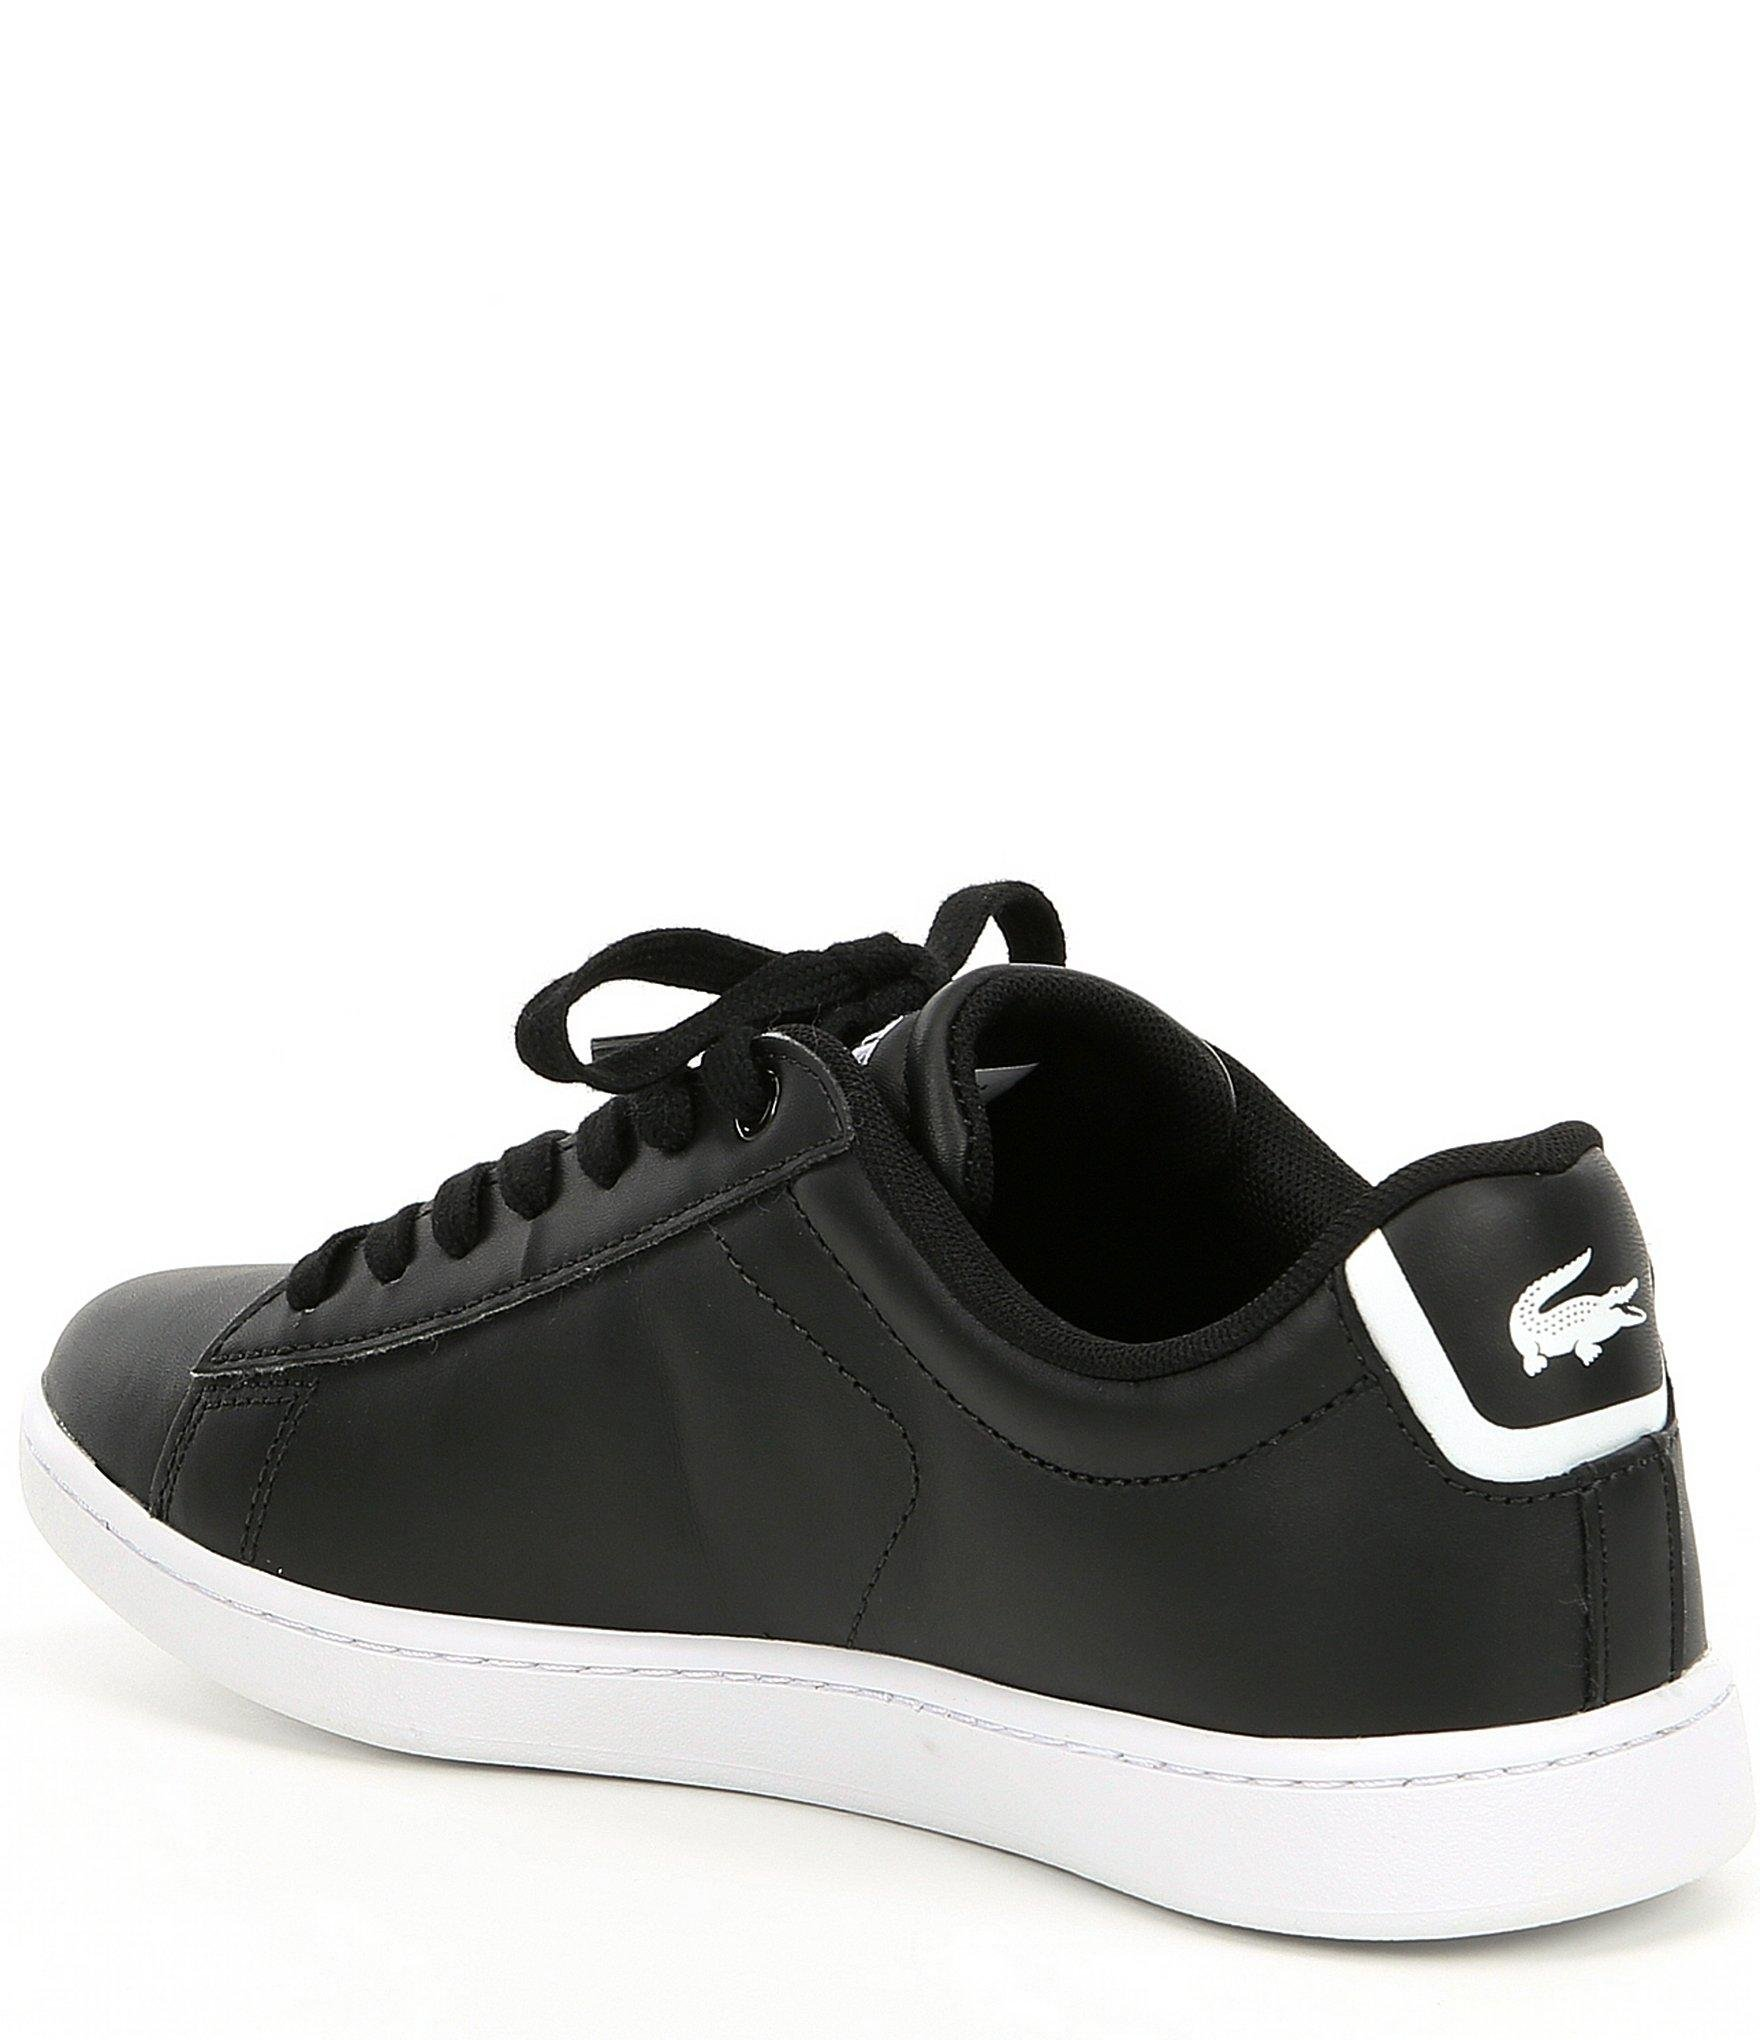 4e7bc1a7 Lyst - Lacoste Women's Carnaby Bl 1 Sneakers in Black